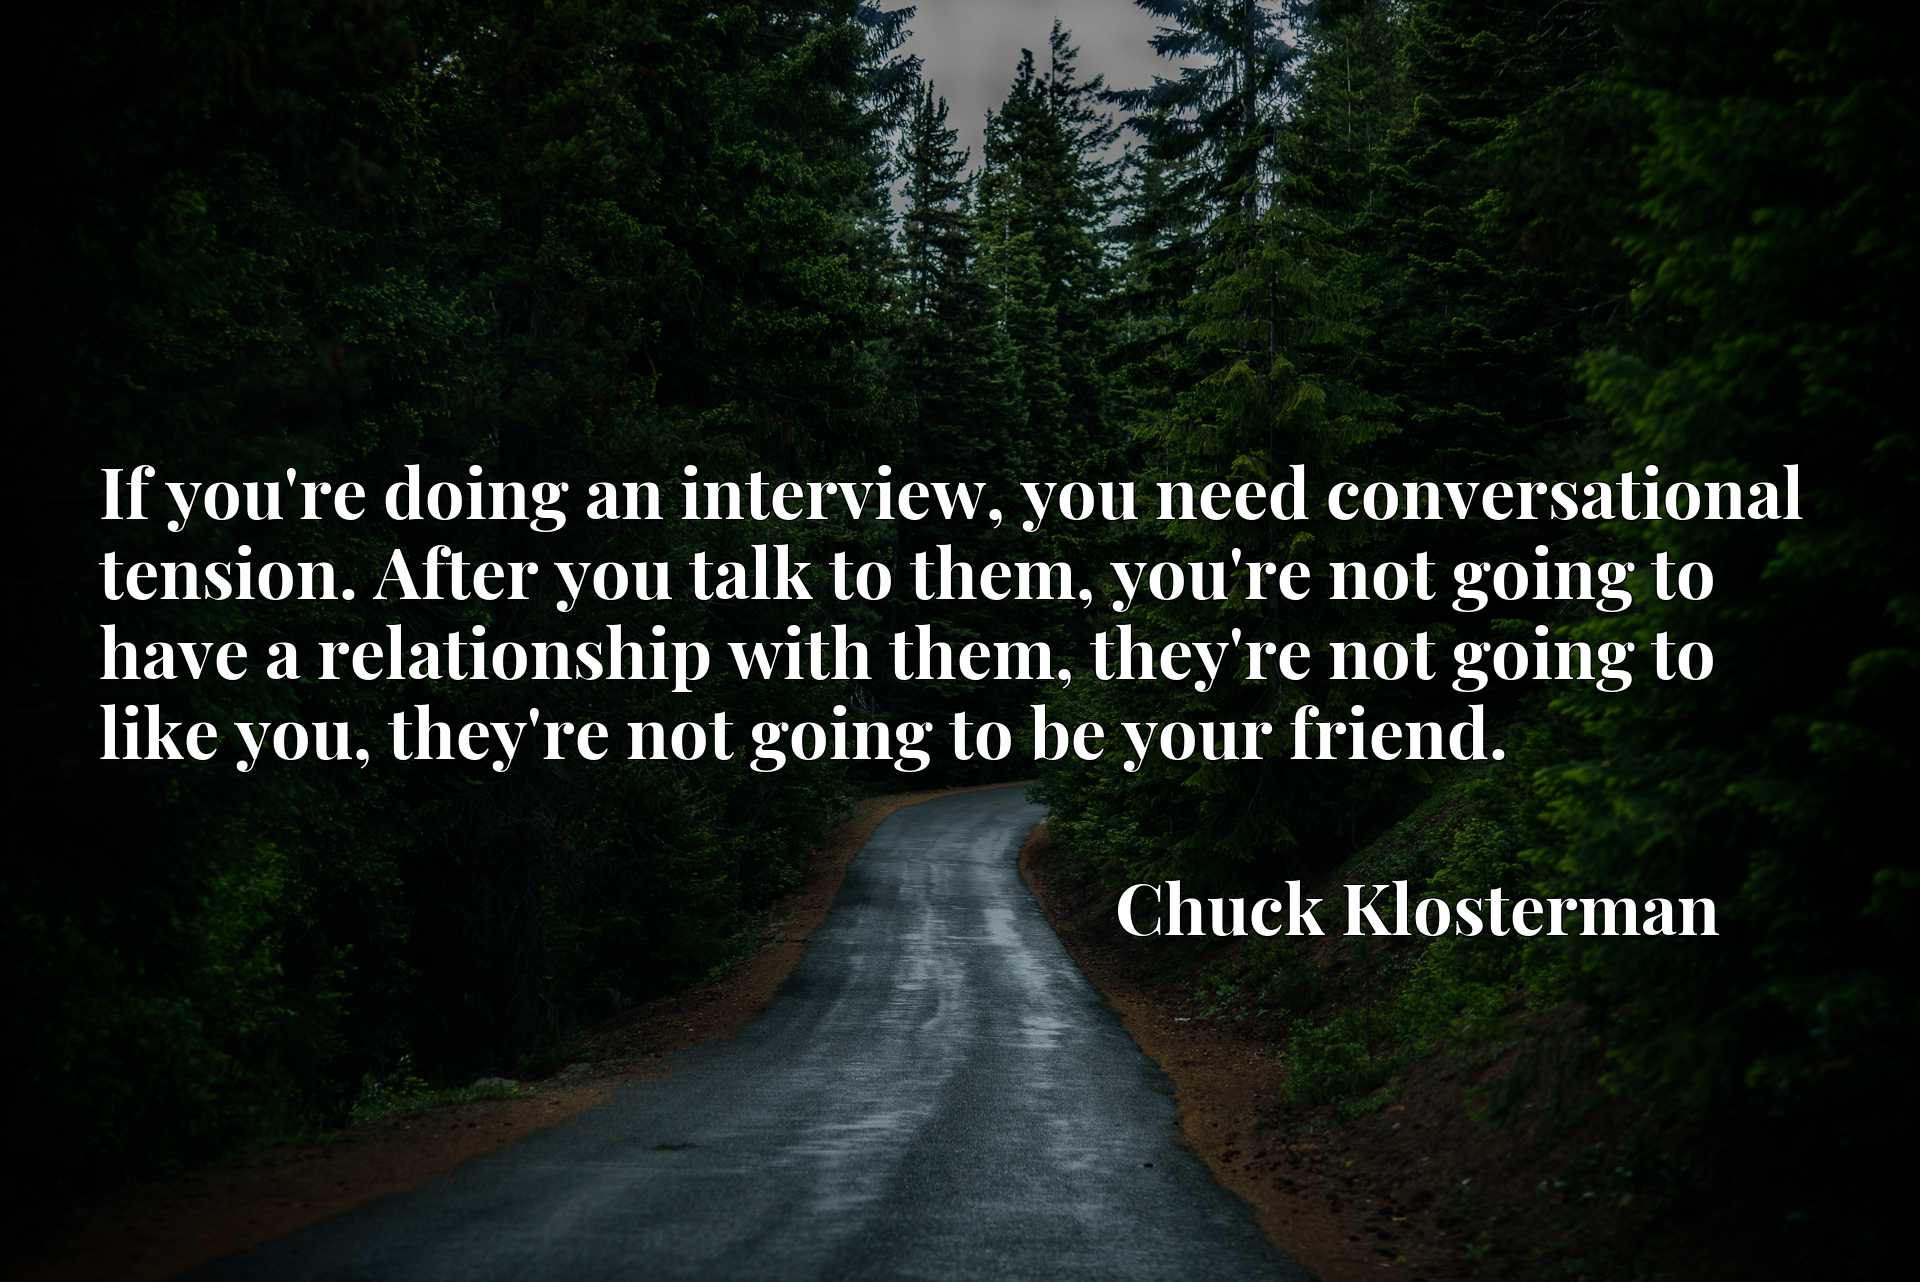 If you're doing an interview, you need conversational tension. After you talk to them, you're not going to have a relationship with them, they're not going to like you, they're not going to be your friend.